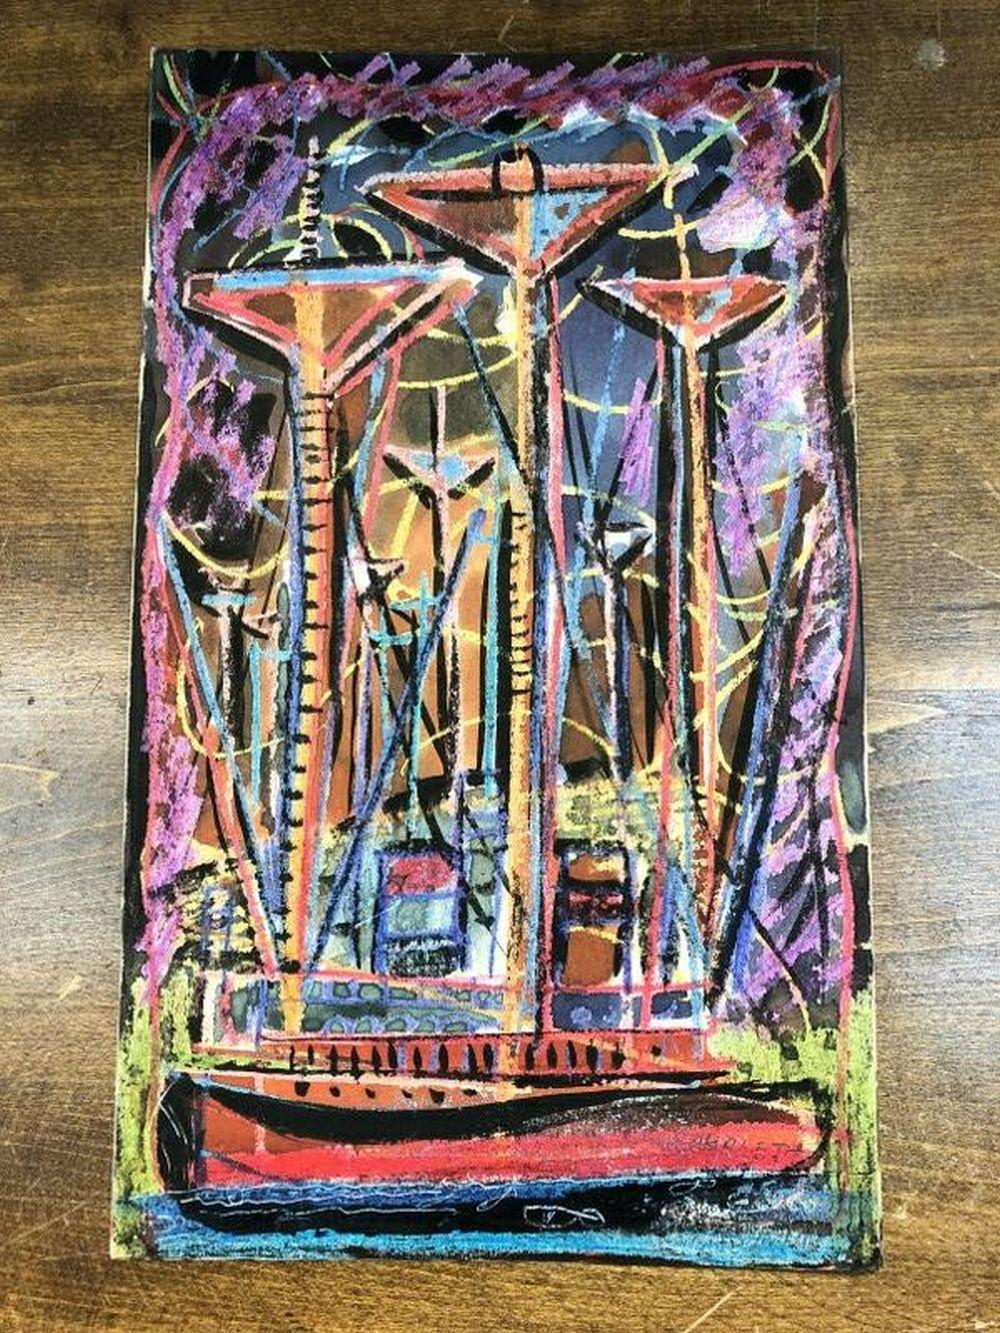 ROLPH SCARLETT W/C ABSTRACT WITH BOAT SIGNED